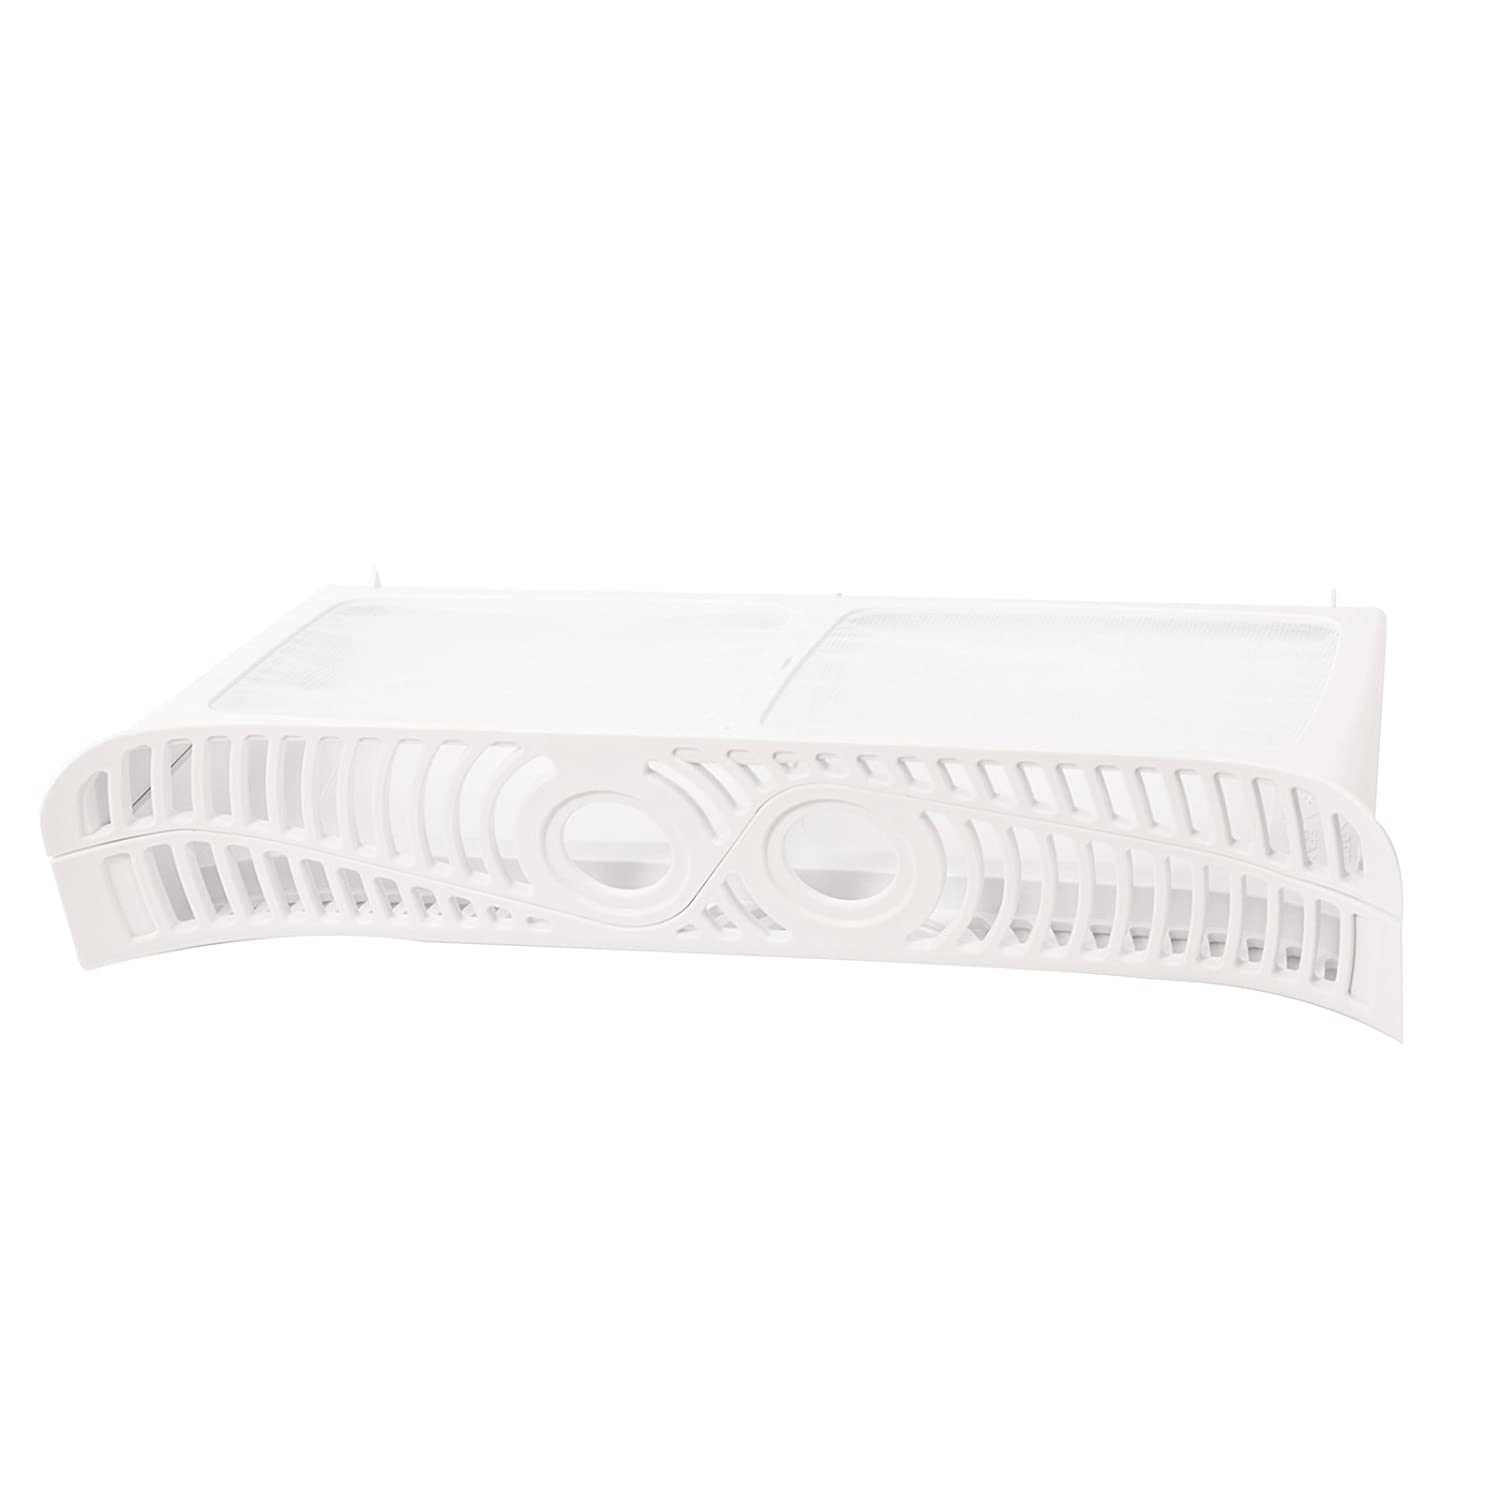 SPARES2GO M2 Type Fluff Filter for Hotpoint Indesit Tumble Dryer